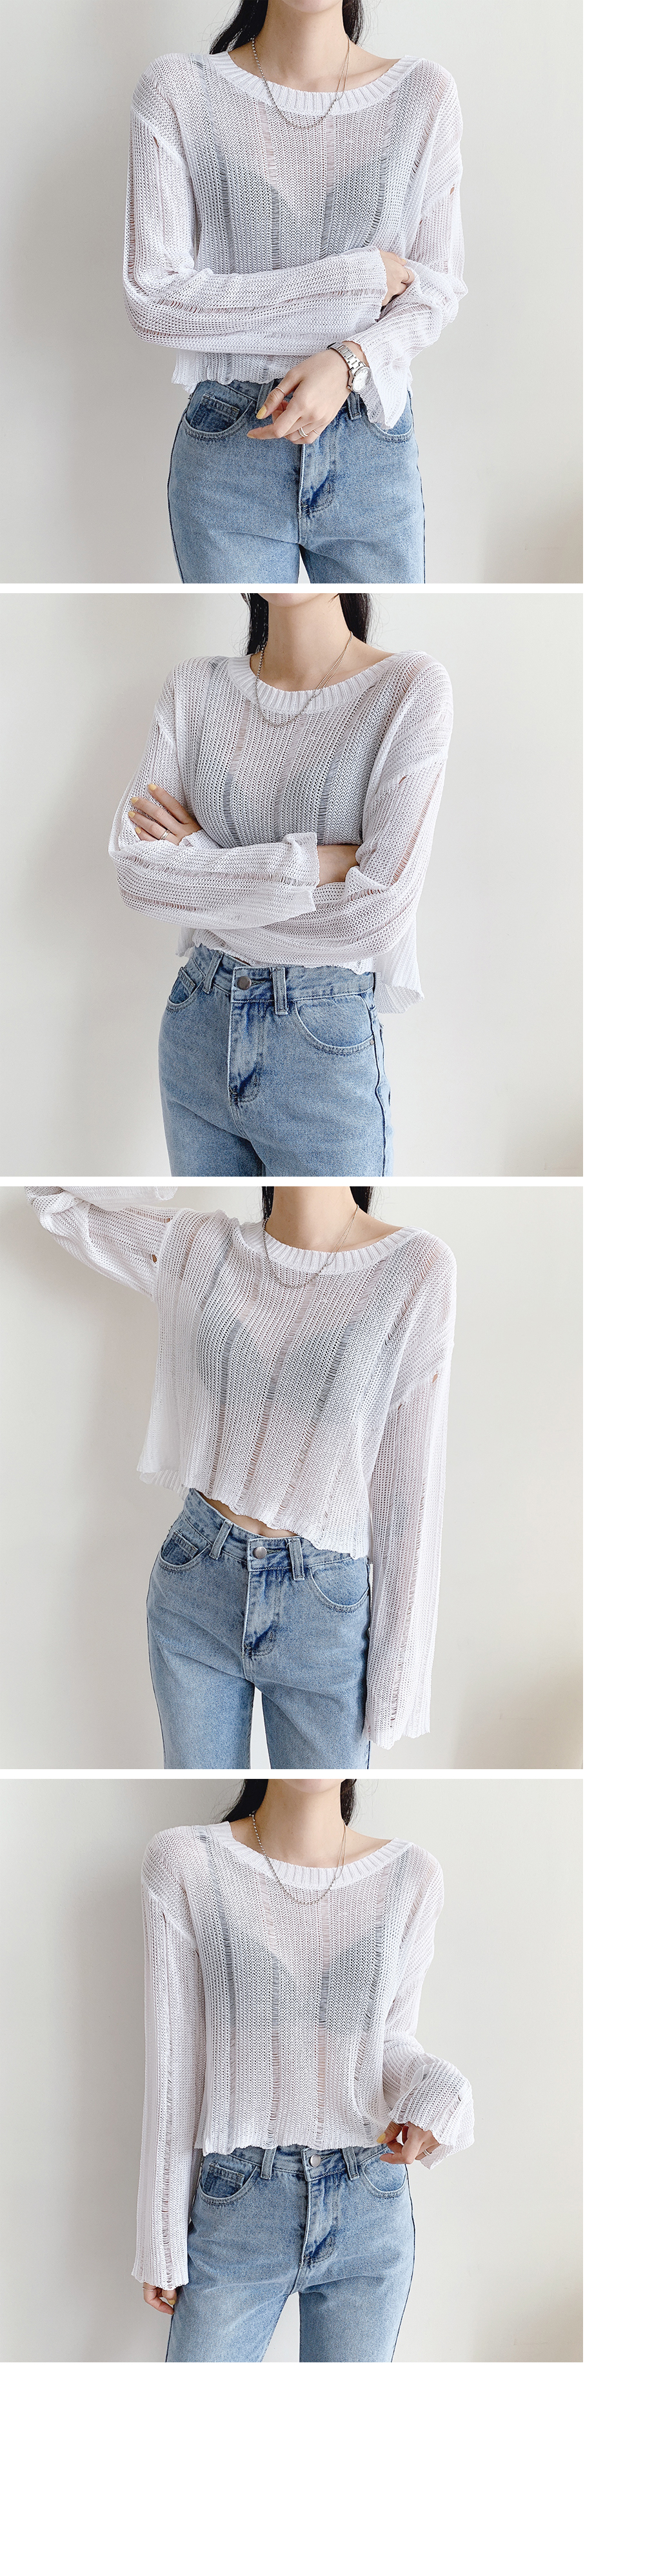 See-through cropped round knit